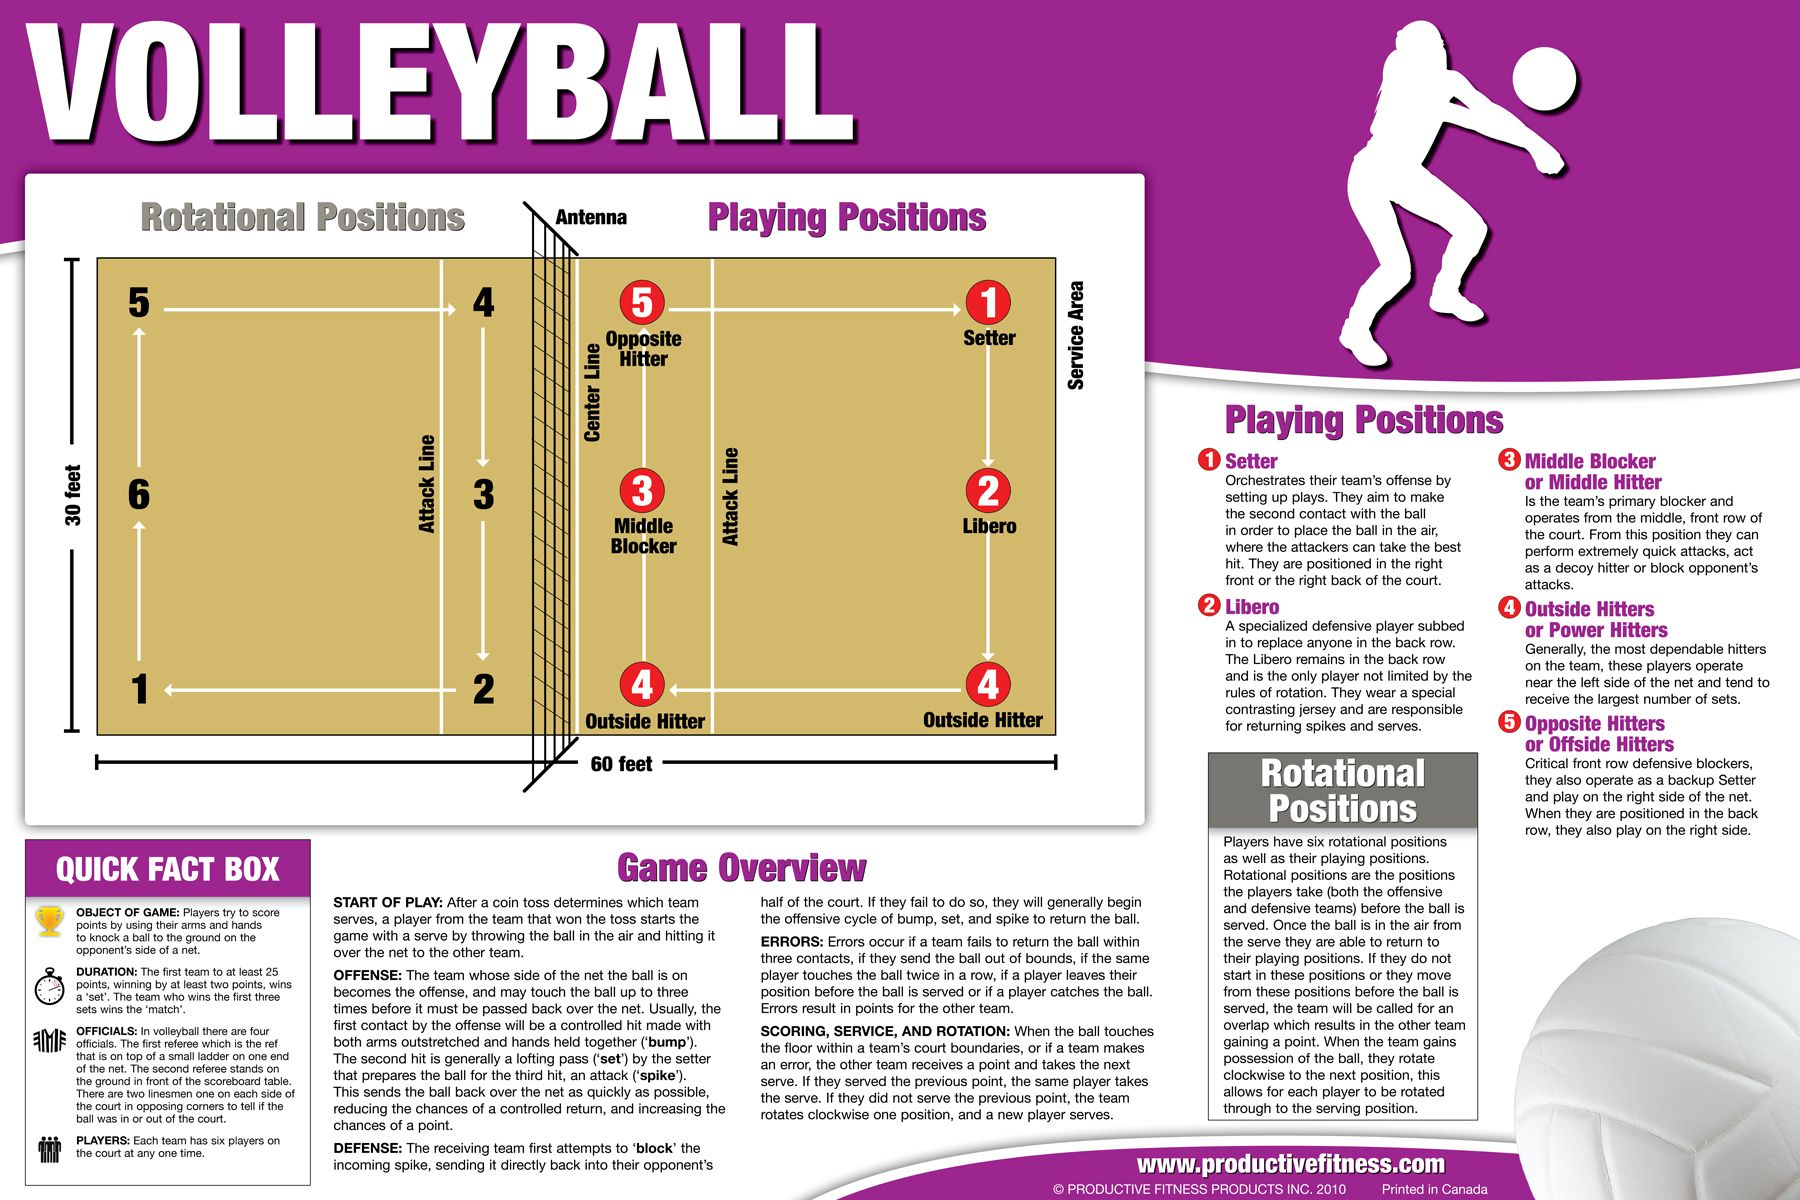 Volleyball Poster Chart 24 95 Our Volleyball Overview Poster Is Perfect To Gain An Easier Understa Volleyball Rules Volleyball Posters Volleyball Positions